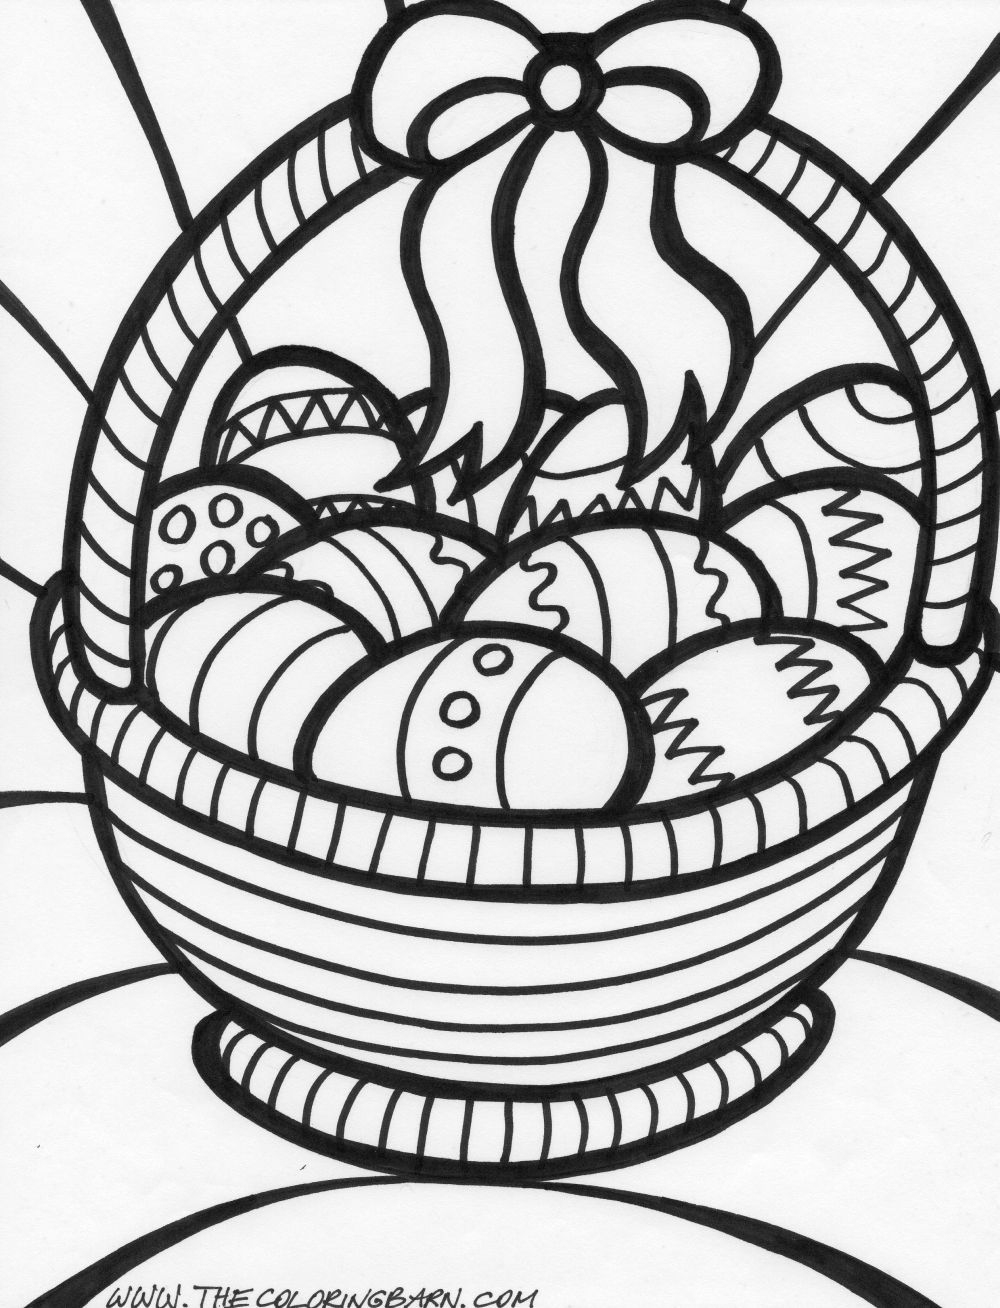 Easter Basket Coloring Page Coloring Page & Book For Kids. - Free Printable Coloring Pages Easter Basket